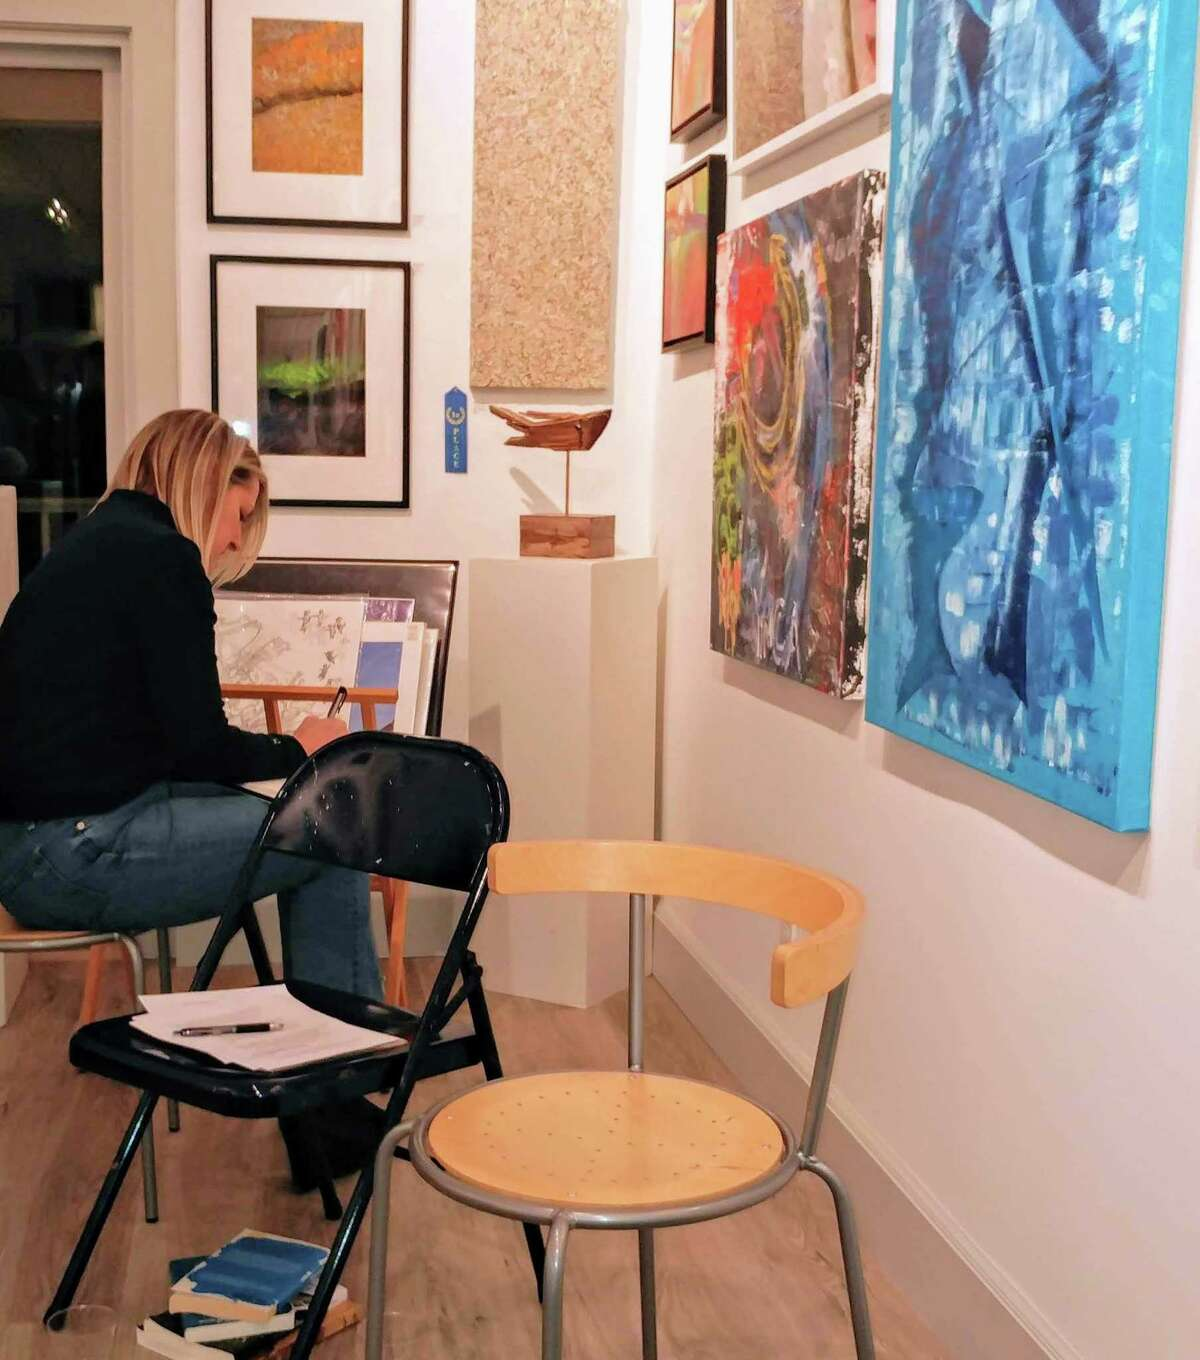 """Rowayton Arts Center will host a free creative writing workshop on October 28. The public is invited to take part in an Ekphrastic Poetry Experience, which is poetry written about works of art. In this case, the current RAC exhibition, """"Autumn Juried Show,"""" will provide the inspiration."""